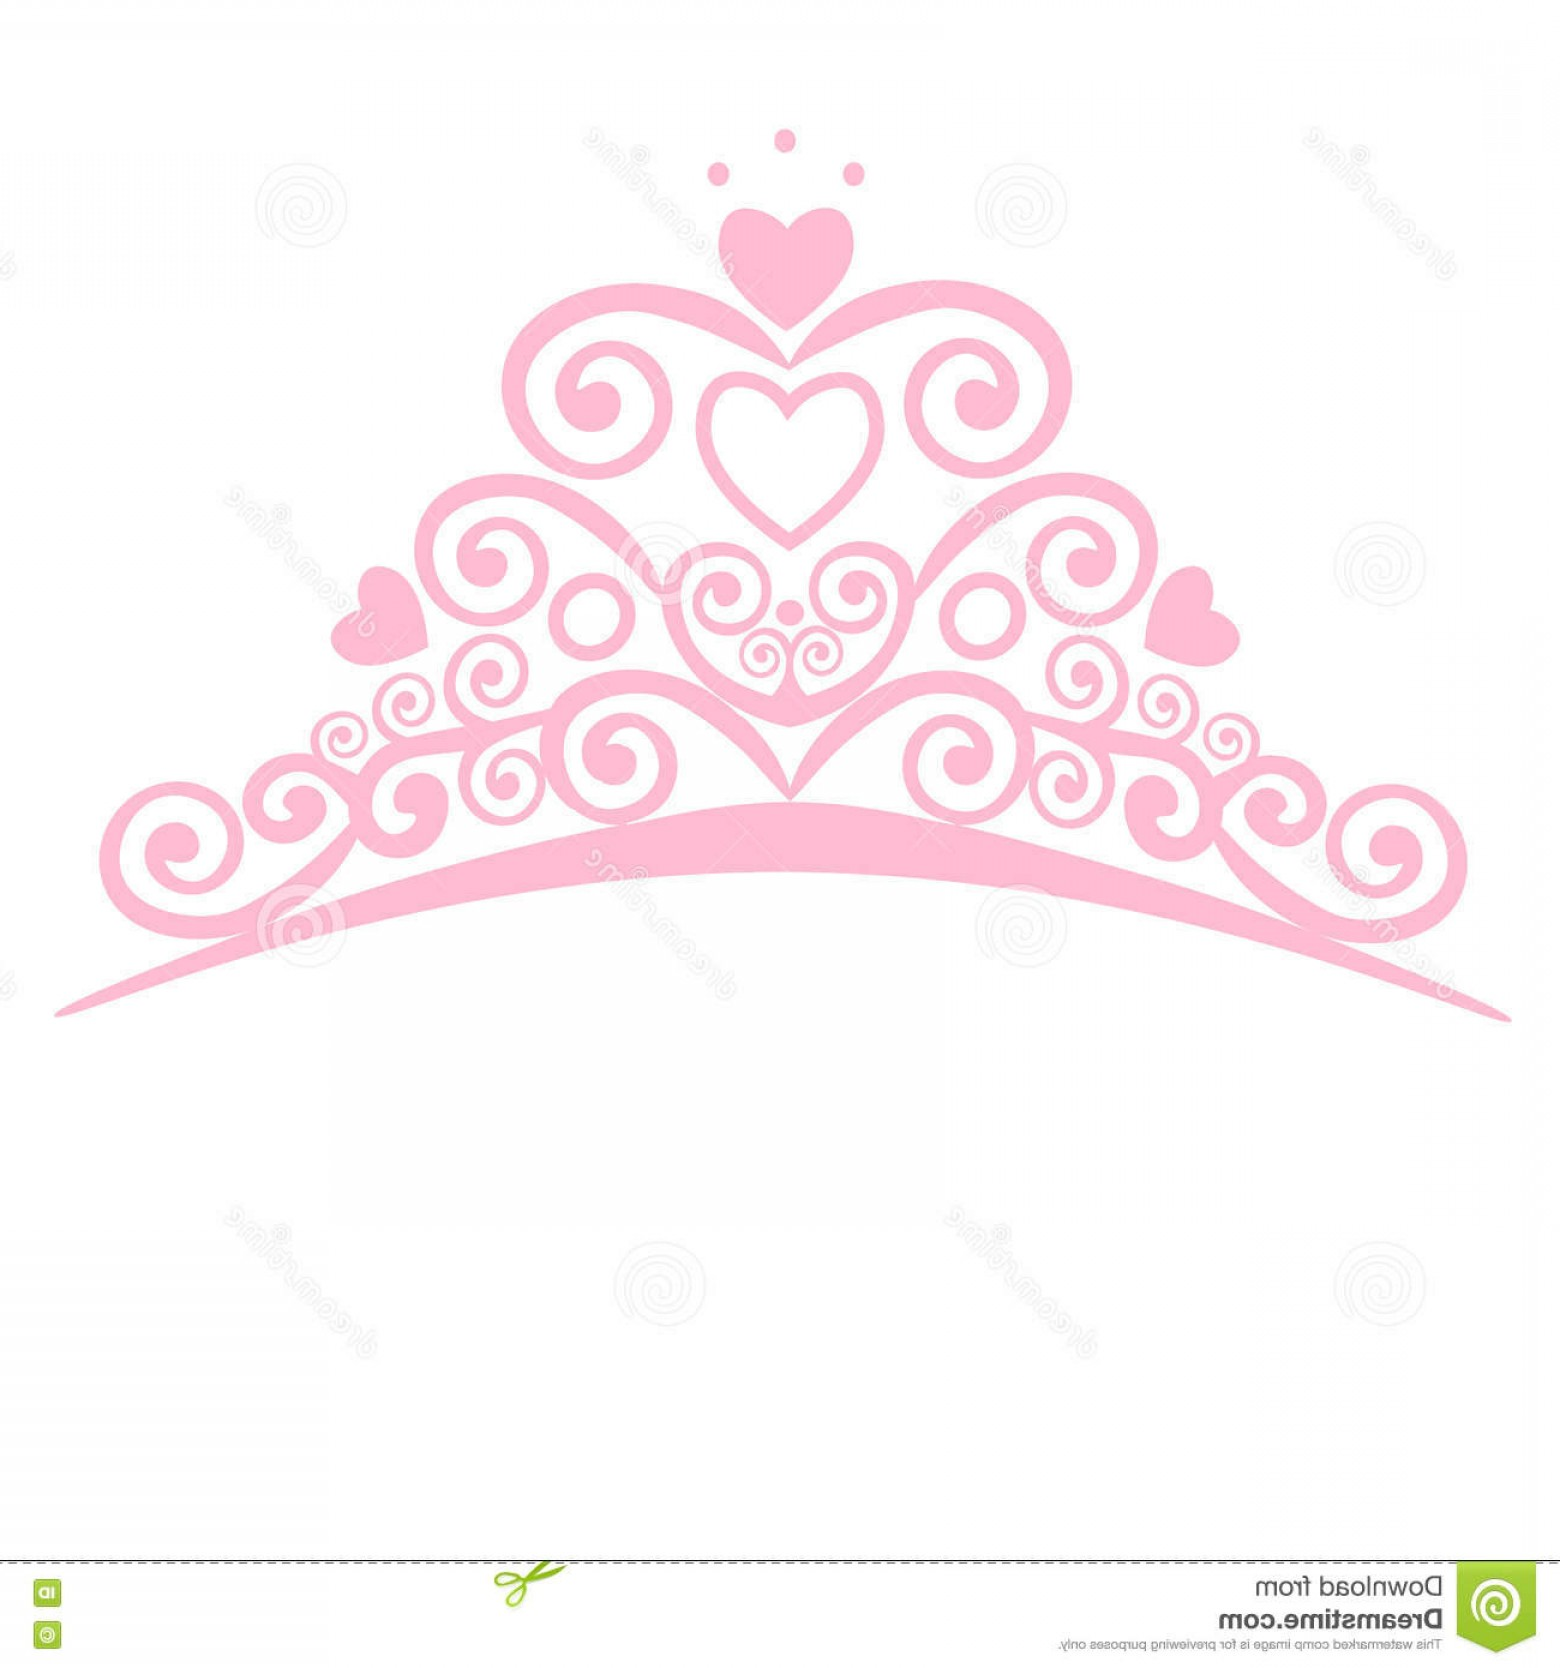 Baby Tiara Silhouette Vector: Stock Illustration Beautiful Shining Princess Crown Vector Illustration Design Elements Little Princess Image